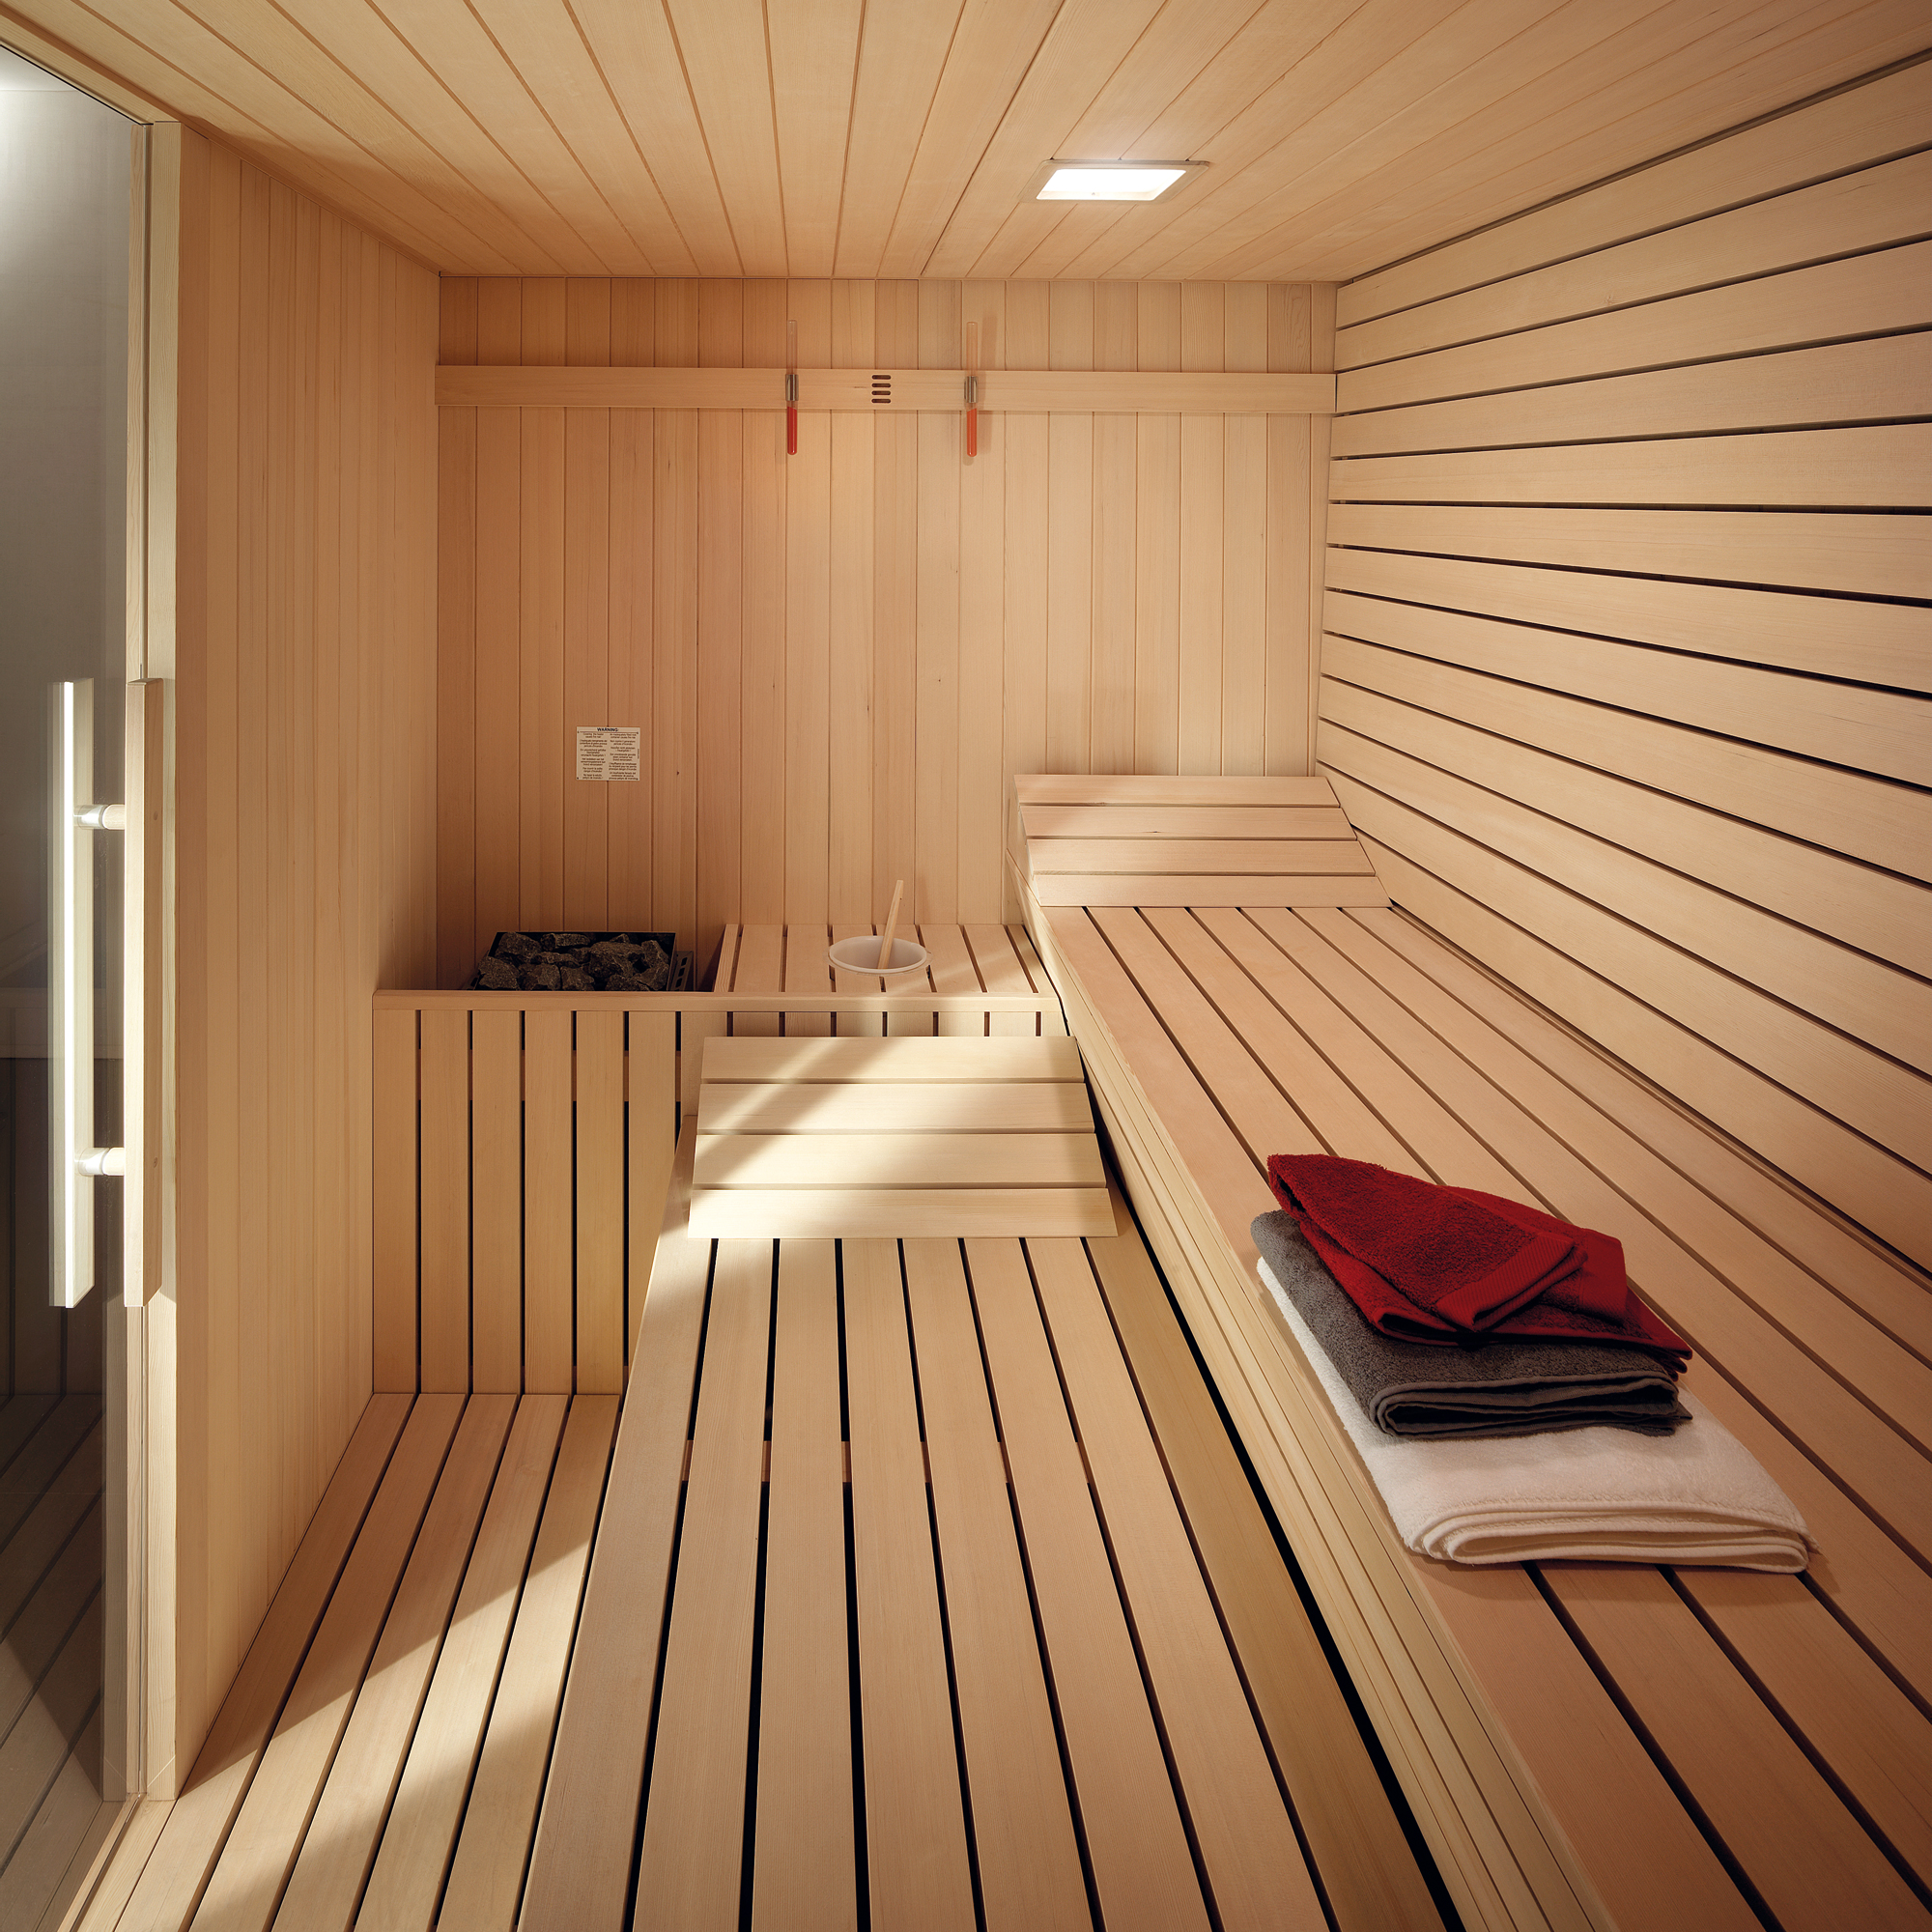 gyms with sauna. Black Bedroom Furniture Sets. Home Design Ideas